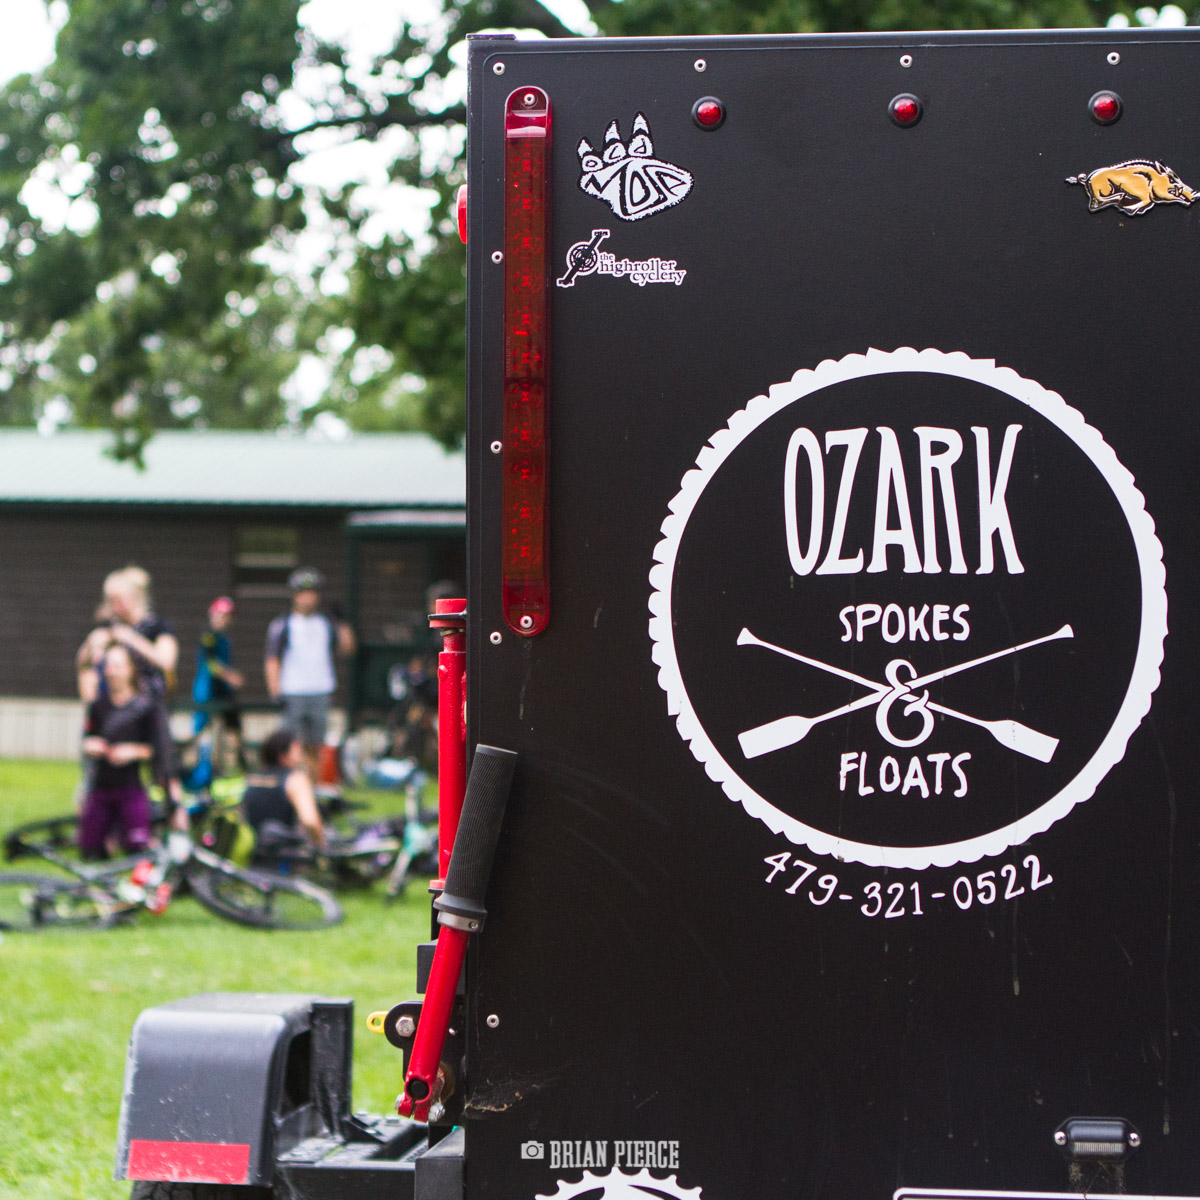 Ozark Spokes & Floats